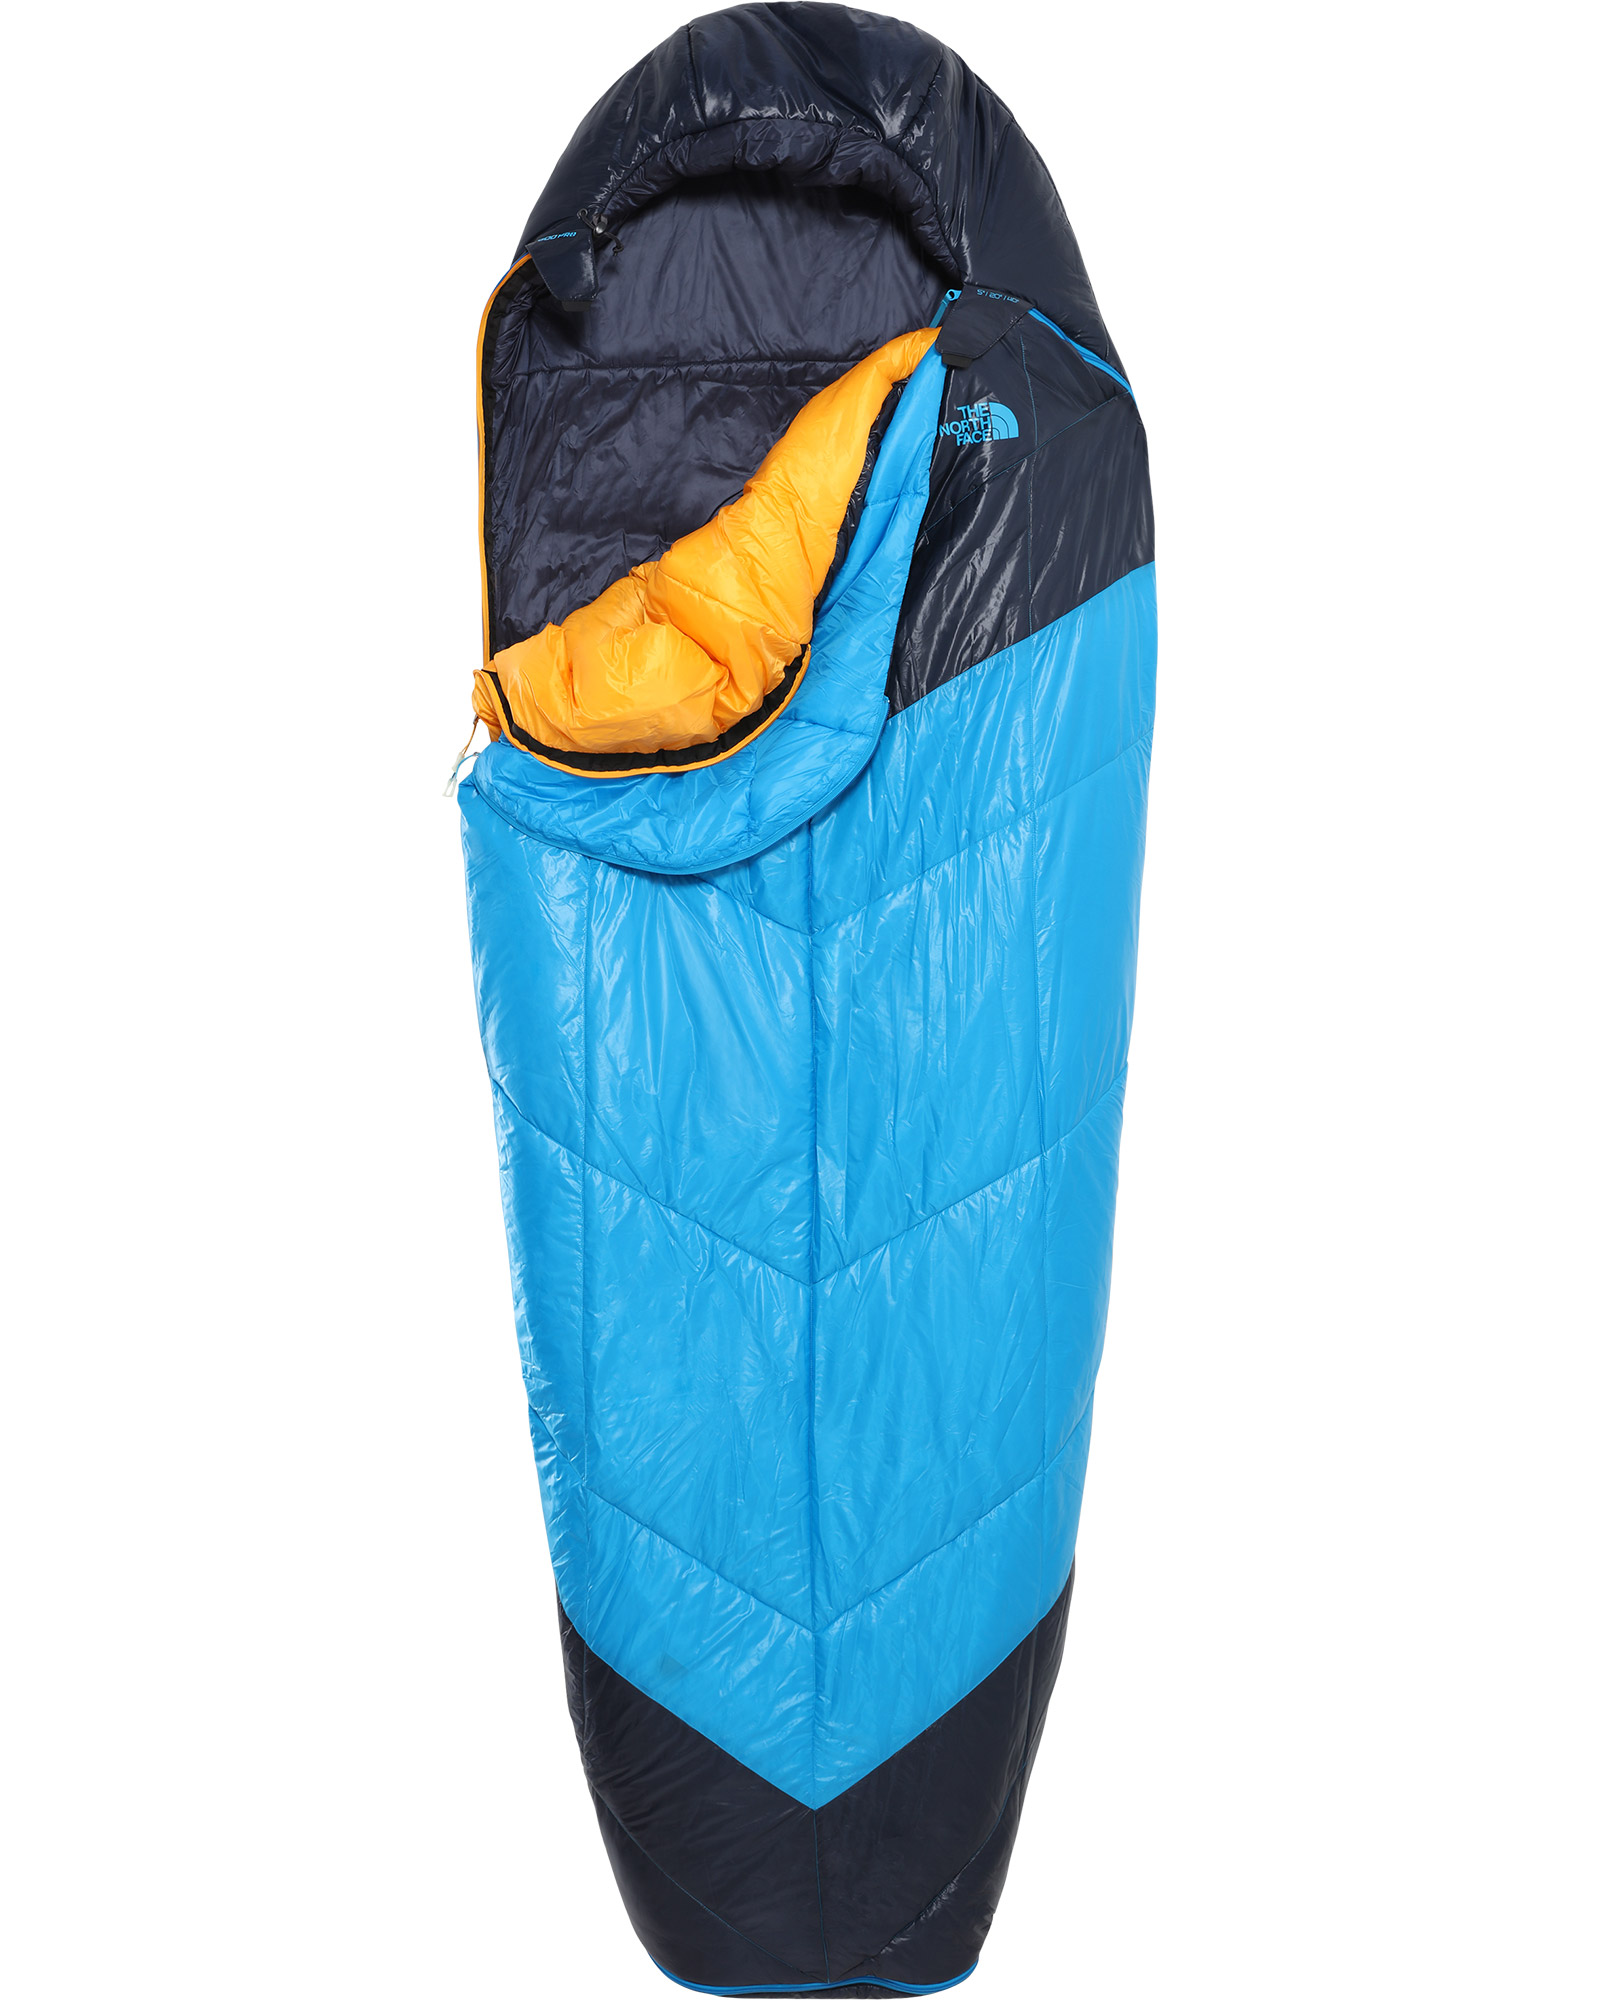 The North Face One Sleeping Bag 0